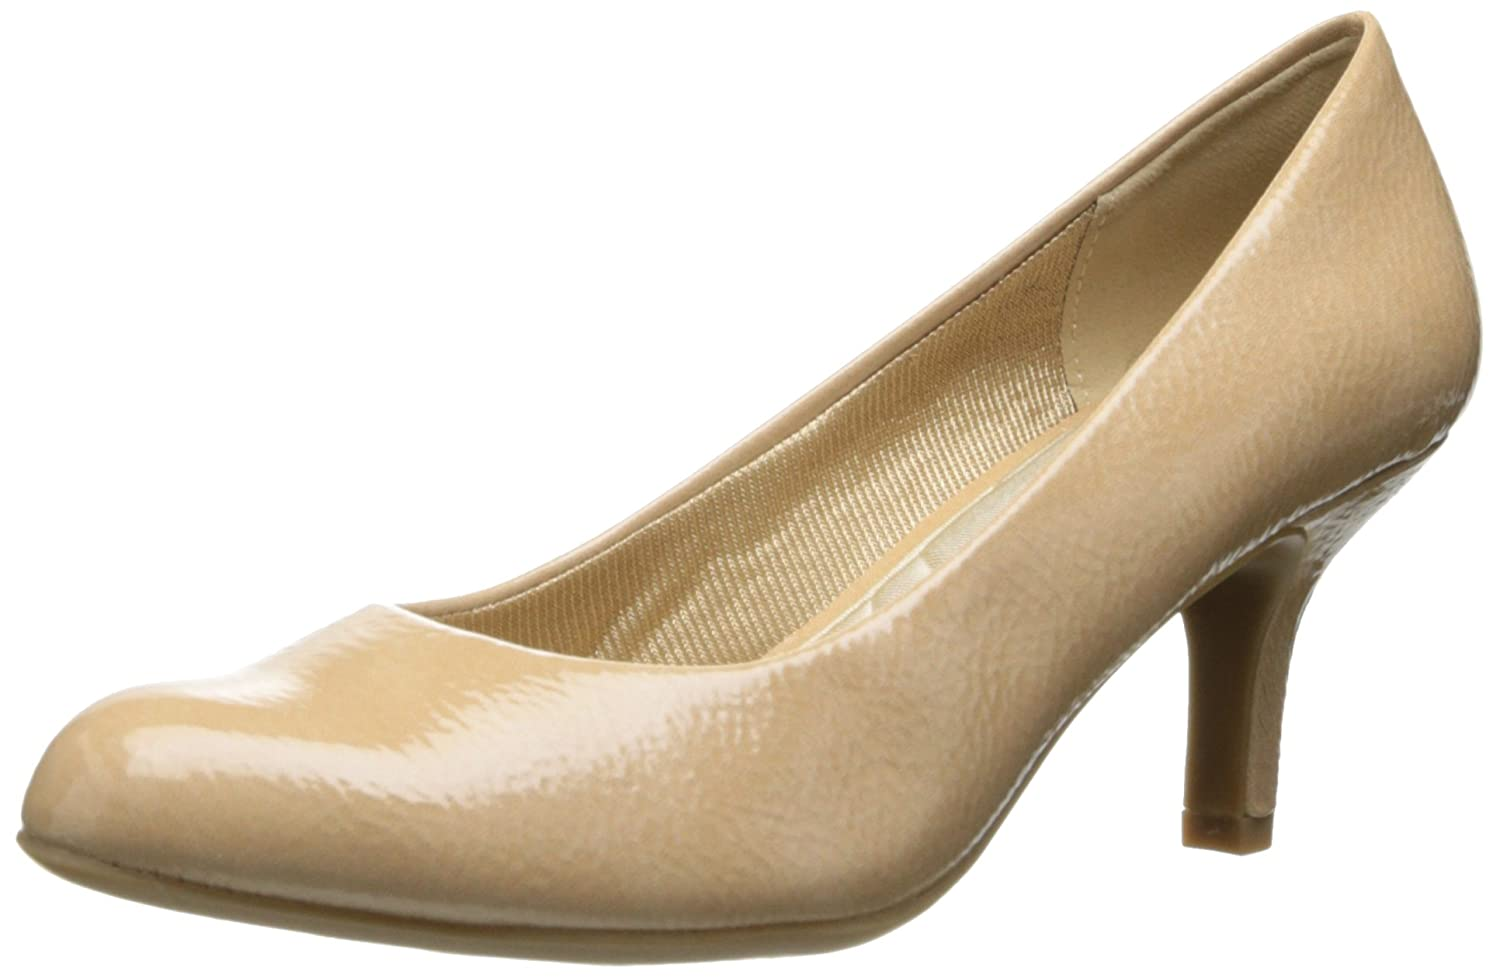 Easy Street Women's Passion Dress Pump B00F4RHX0Y 6.5 B(M) US|Taupe Crinkle Patent